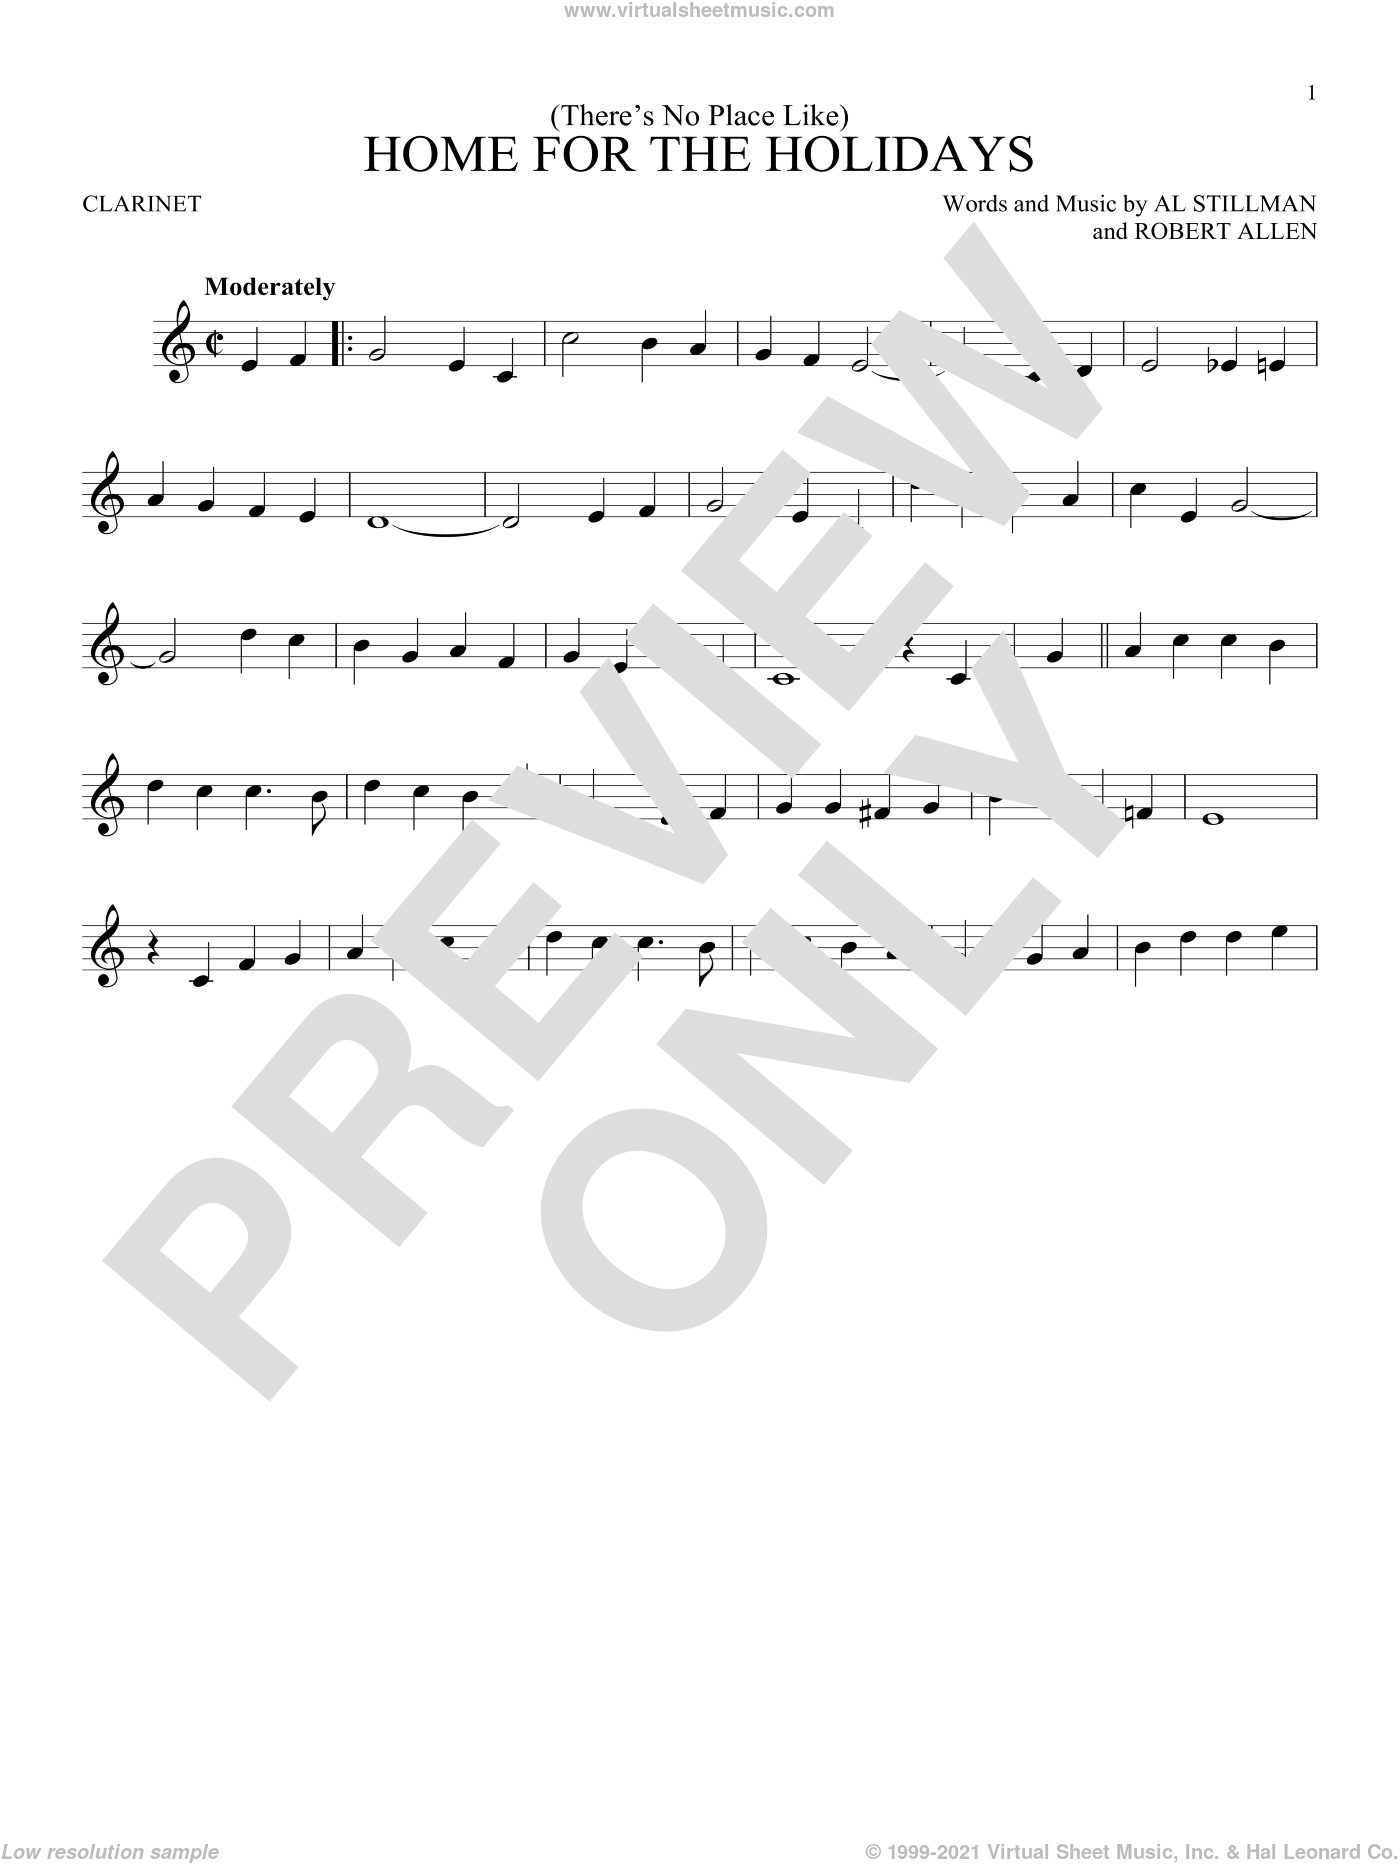 (There's No Place Like) Home For The Holidays sheet music for clarinet solo by Perry Como, Al Stillman and Robert Allen, intermediate skill level